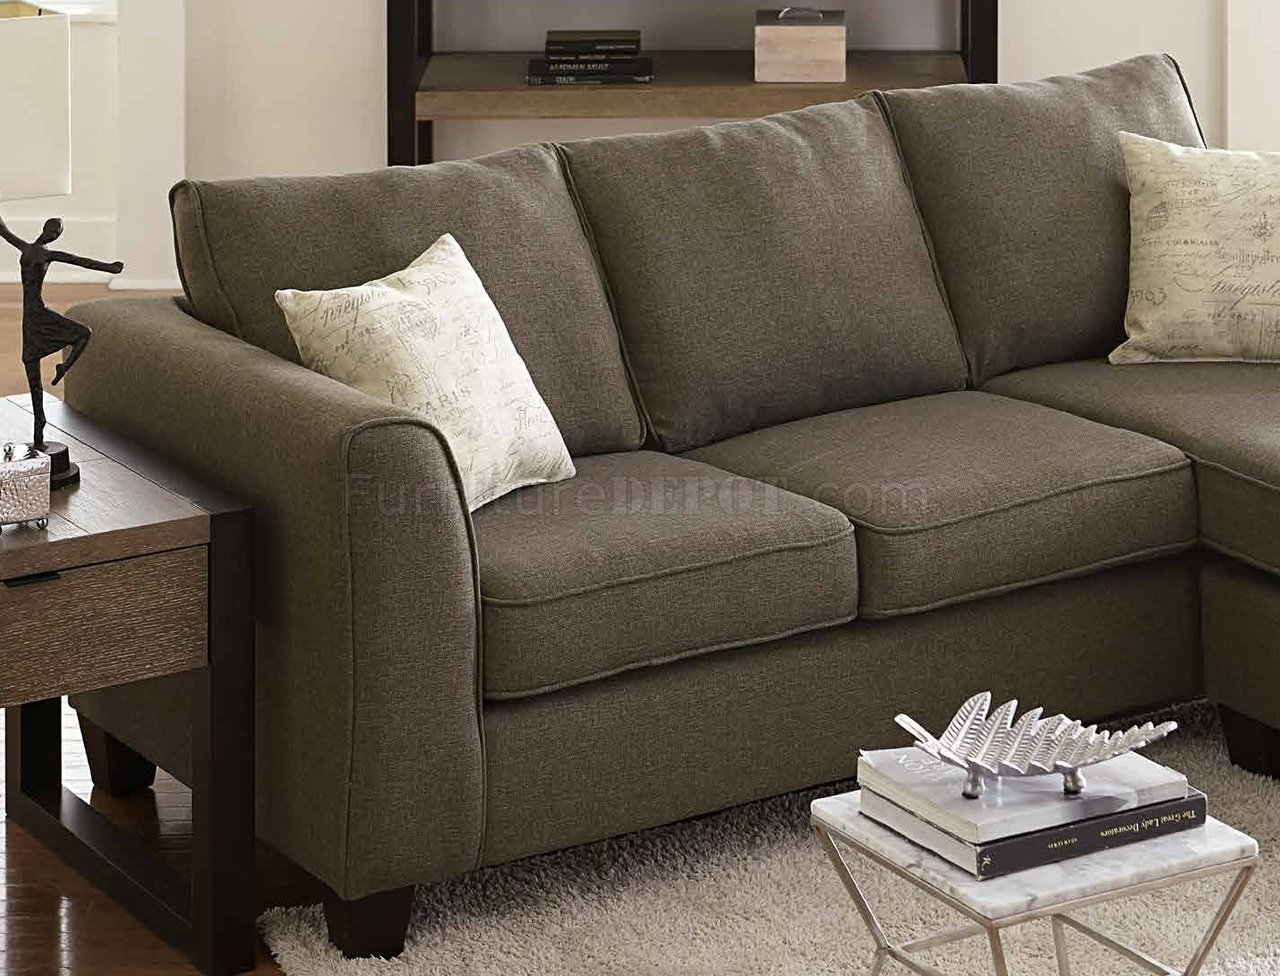 reversible sectional sofa chaise green cover 3009 in grey fabric w/accent pillows